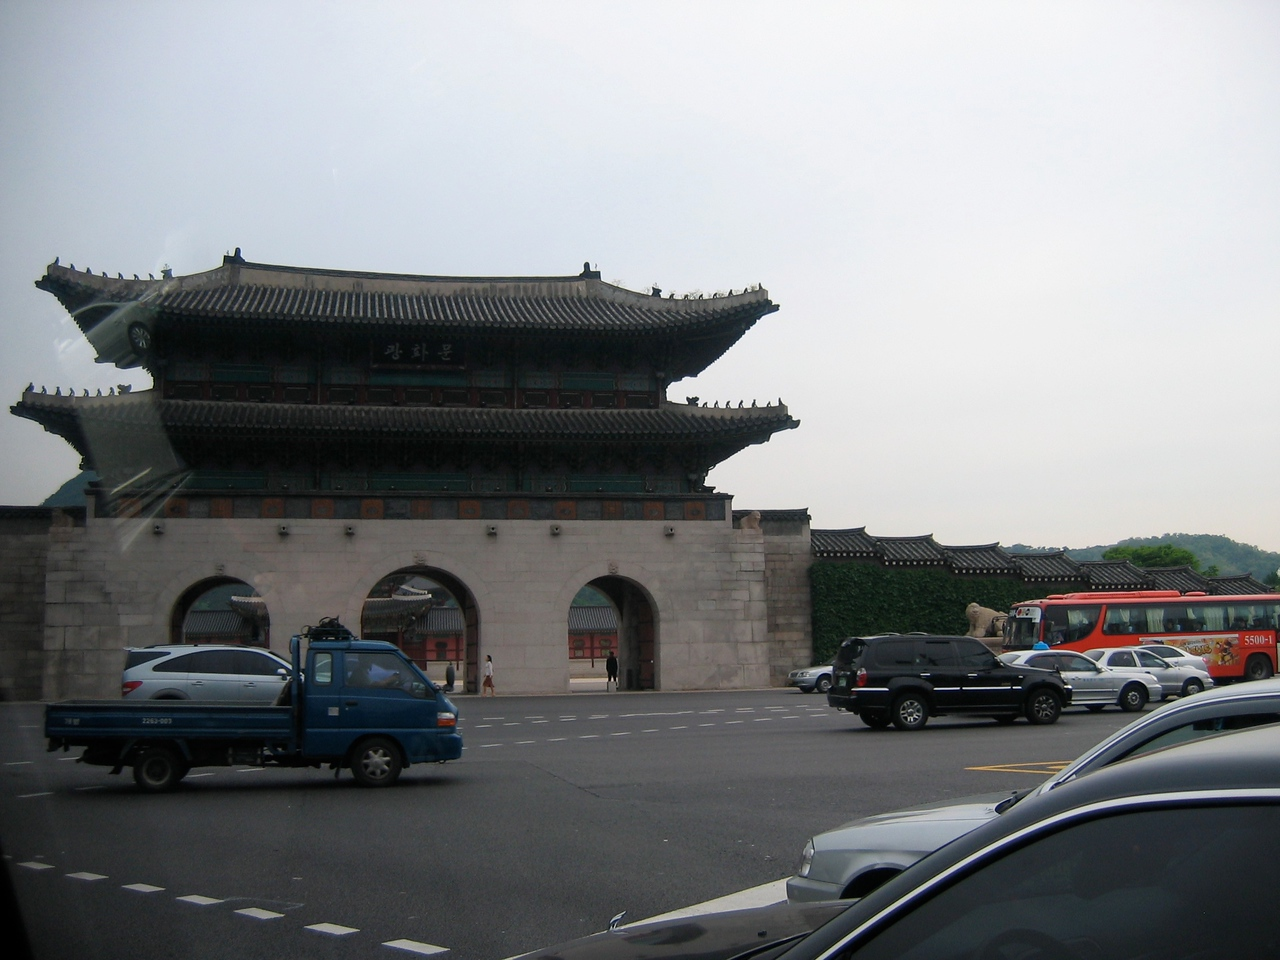 On our way to the DMZ, we pass the Gyeonbok-gong palace in Seoul.  It was constructed in 1395.